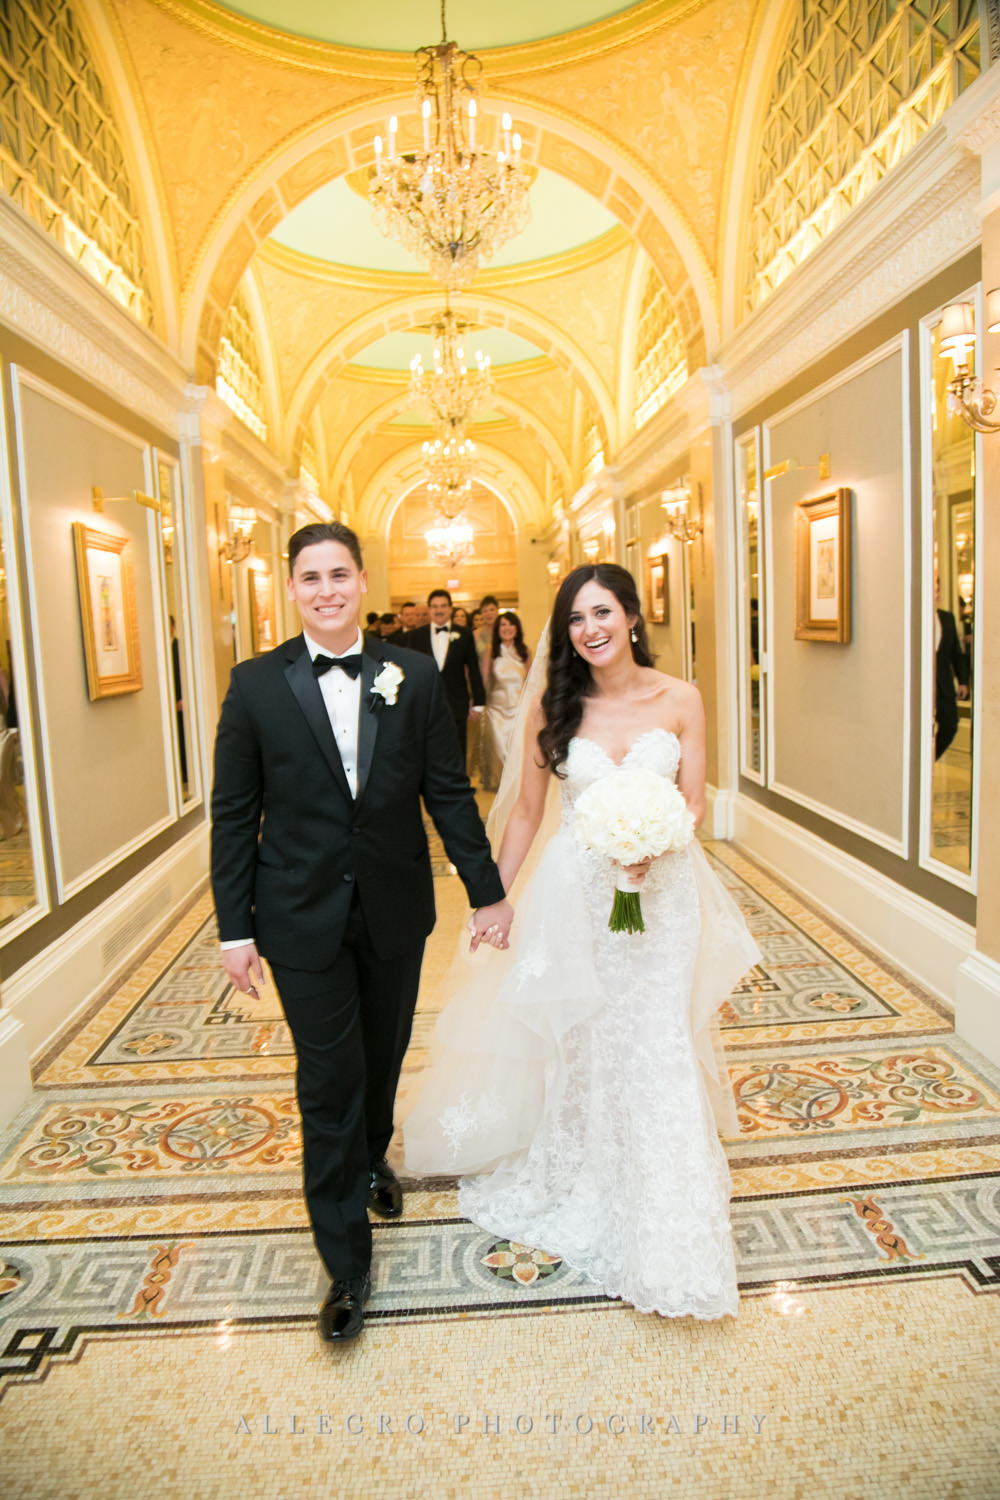 bride and groom smile as they walk out of ceremony